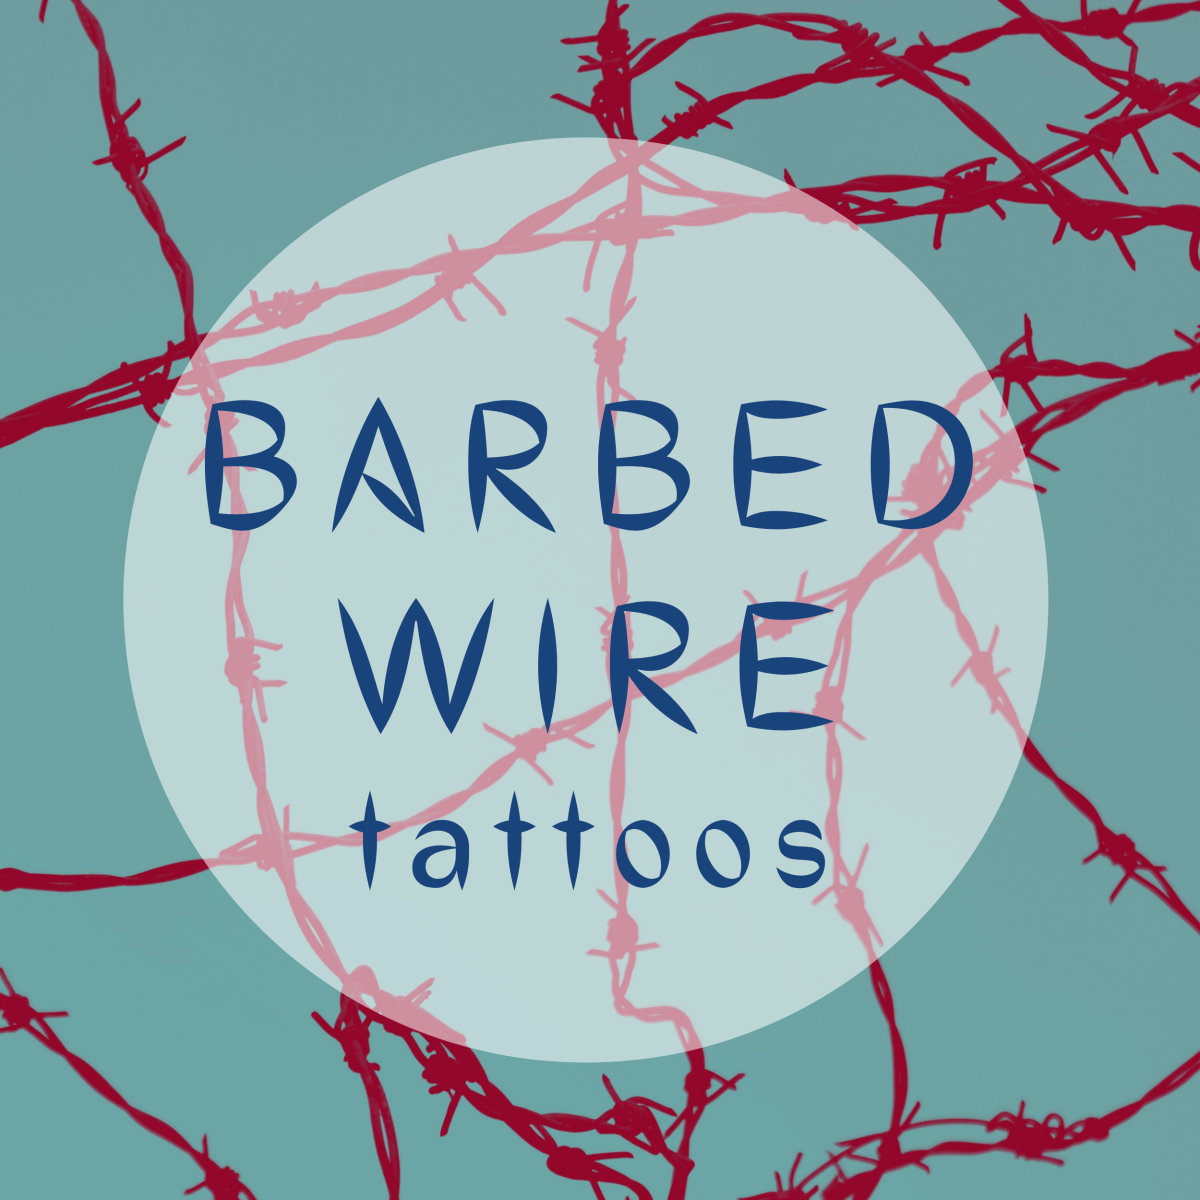 Barbed Wire Tattoos: Design Ideas, Photos, and More